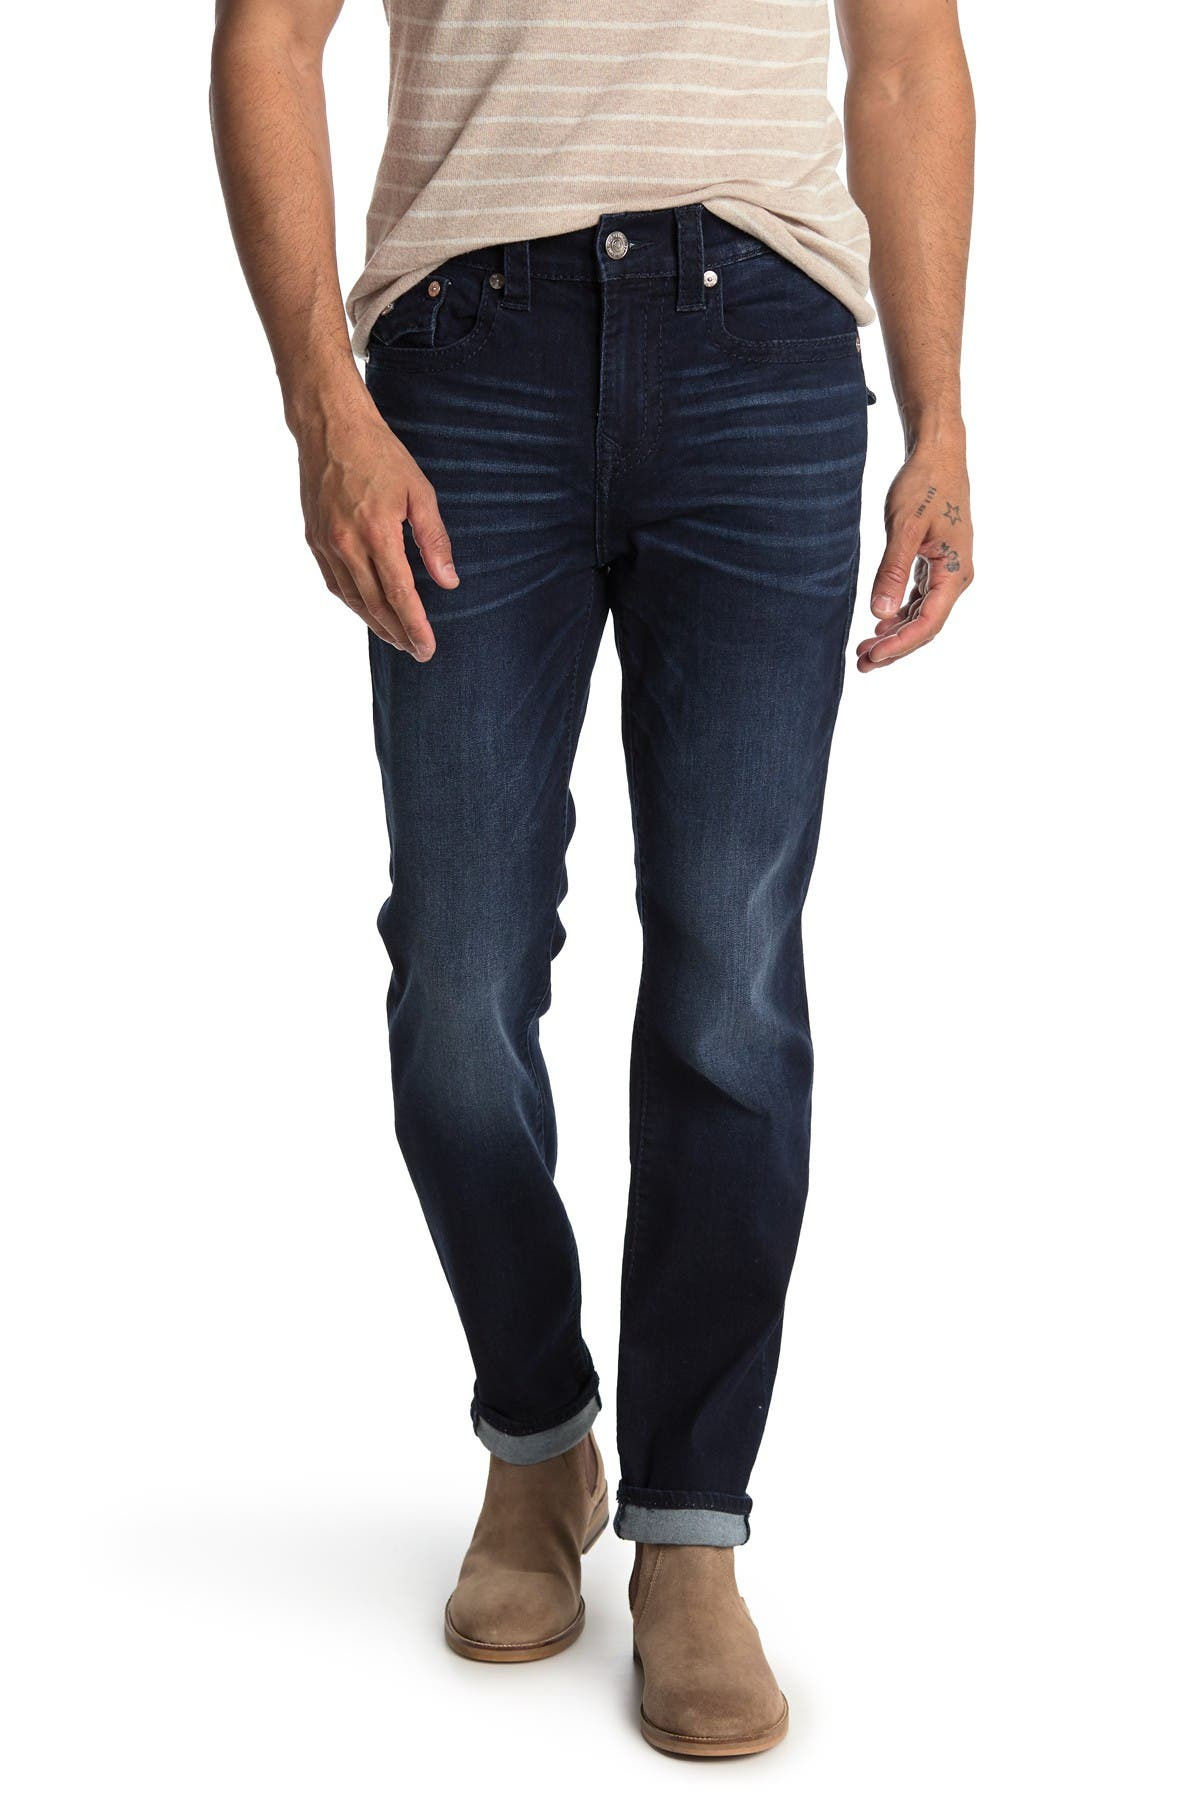 Image of True Religion Rocco Flap Pocket Straight Leg Jeans